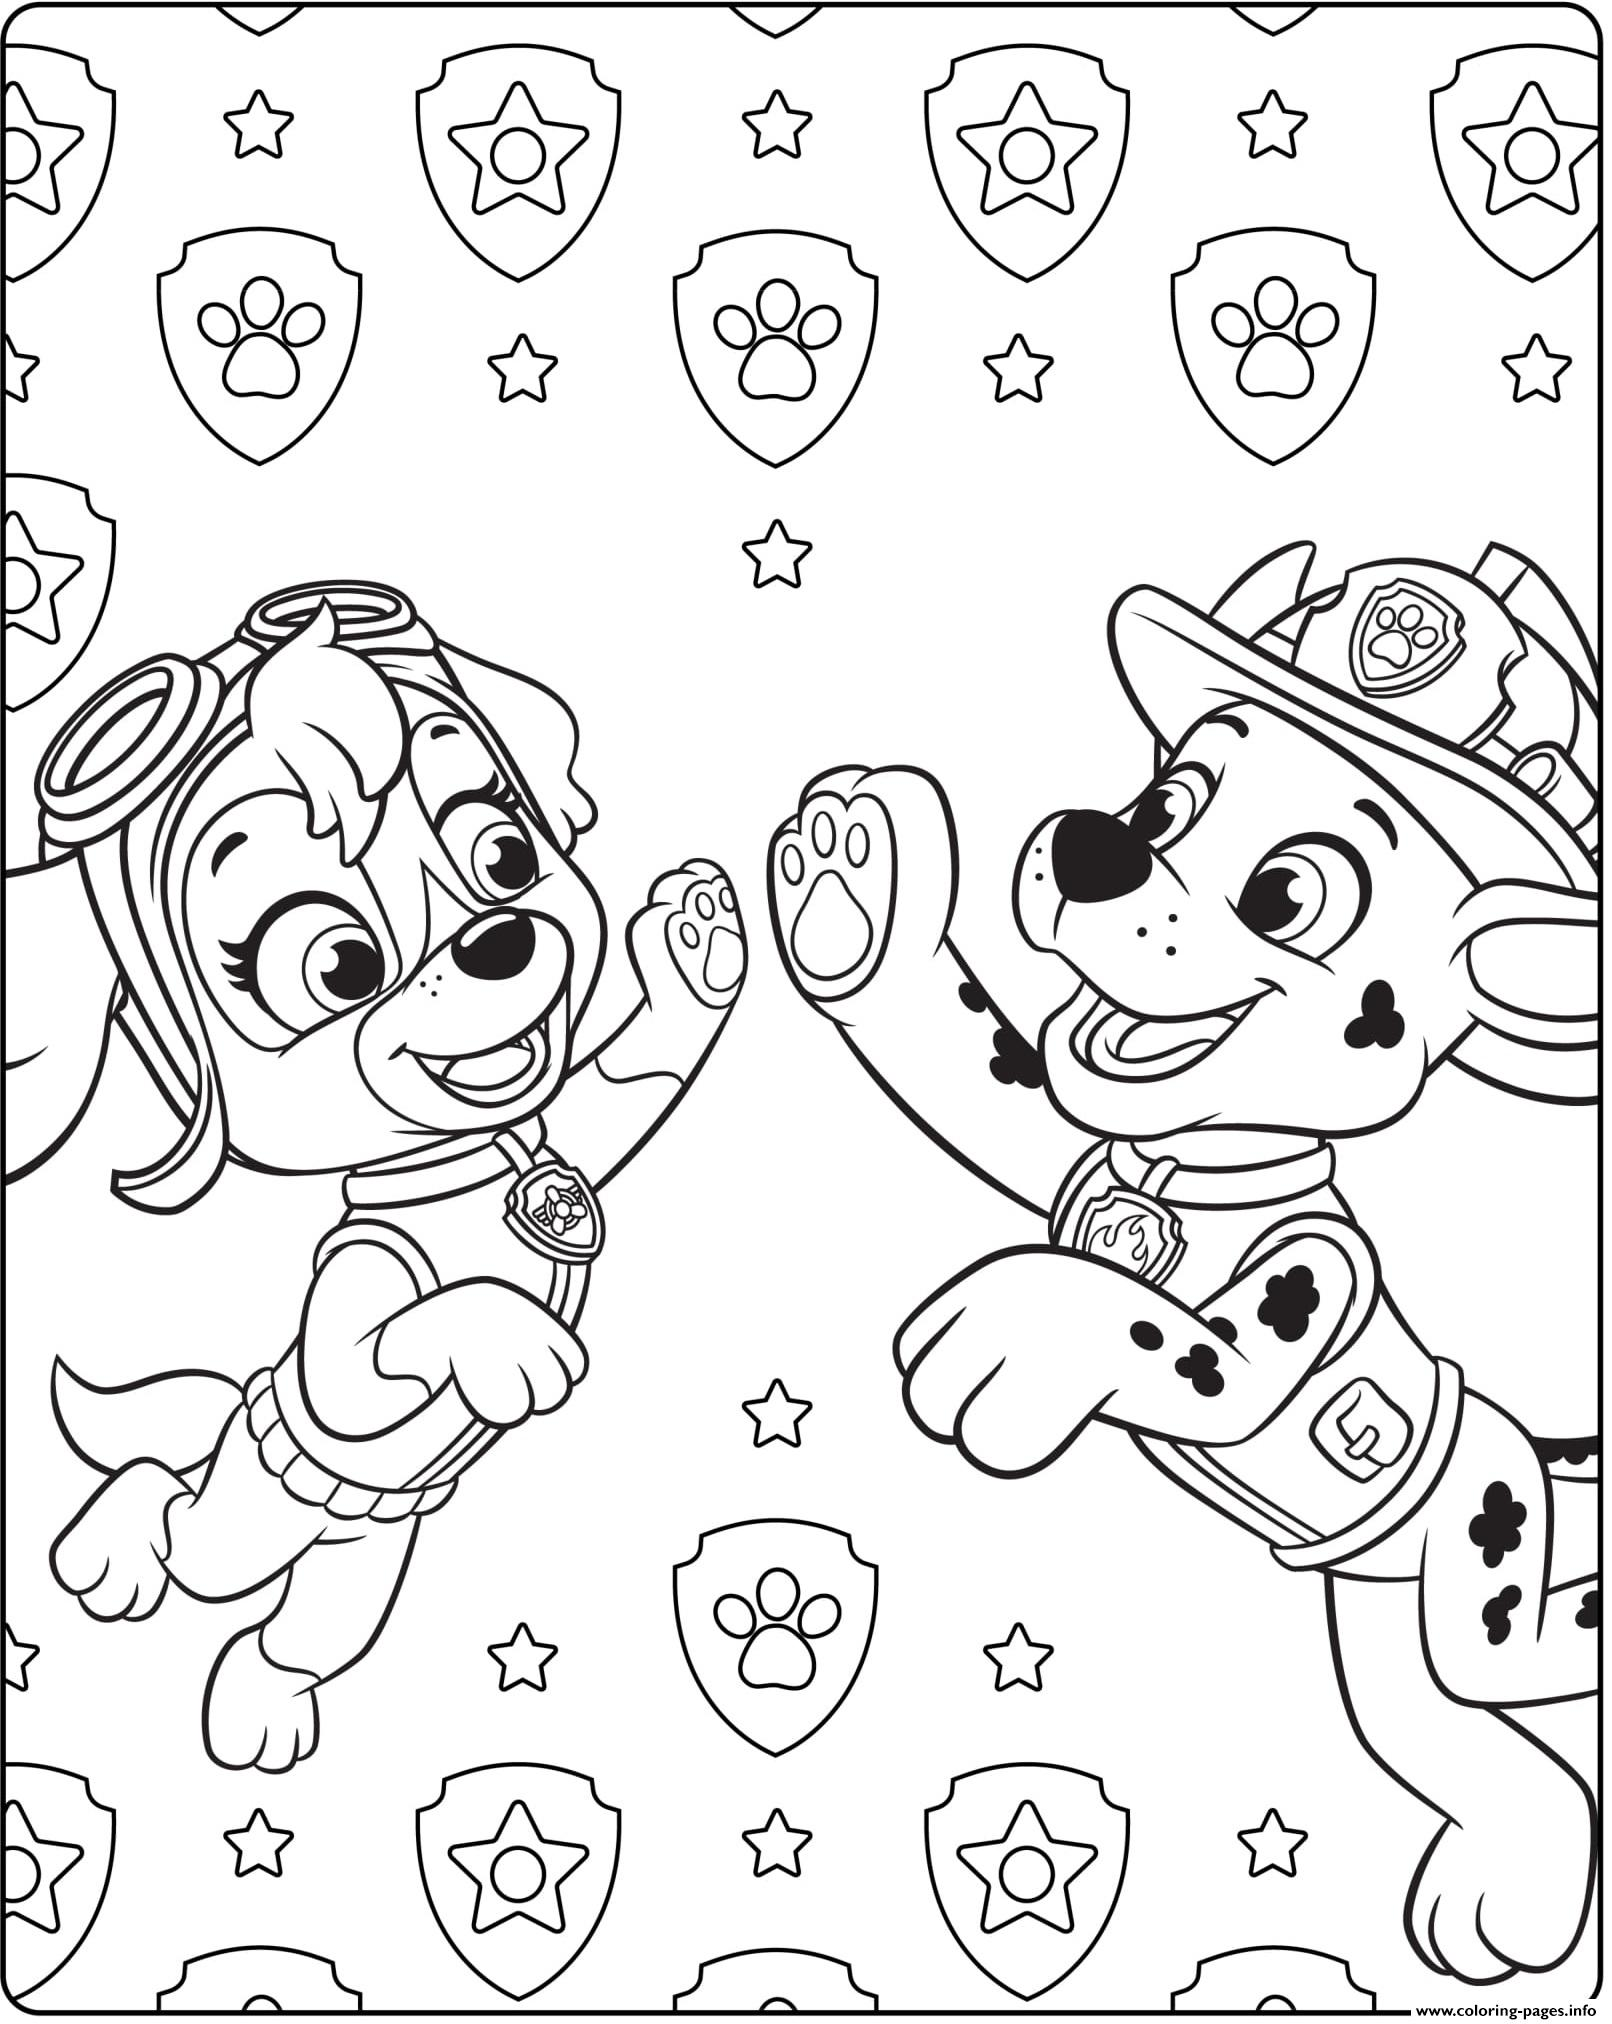 Paw Patrol Ultimate Rescue Skye Marshall coloring pages